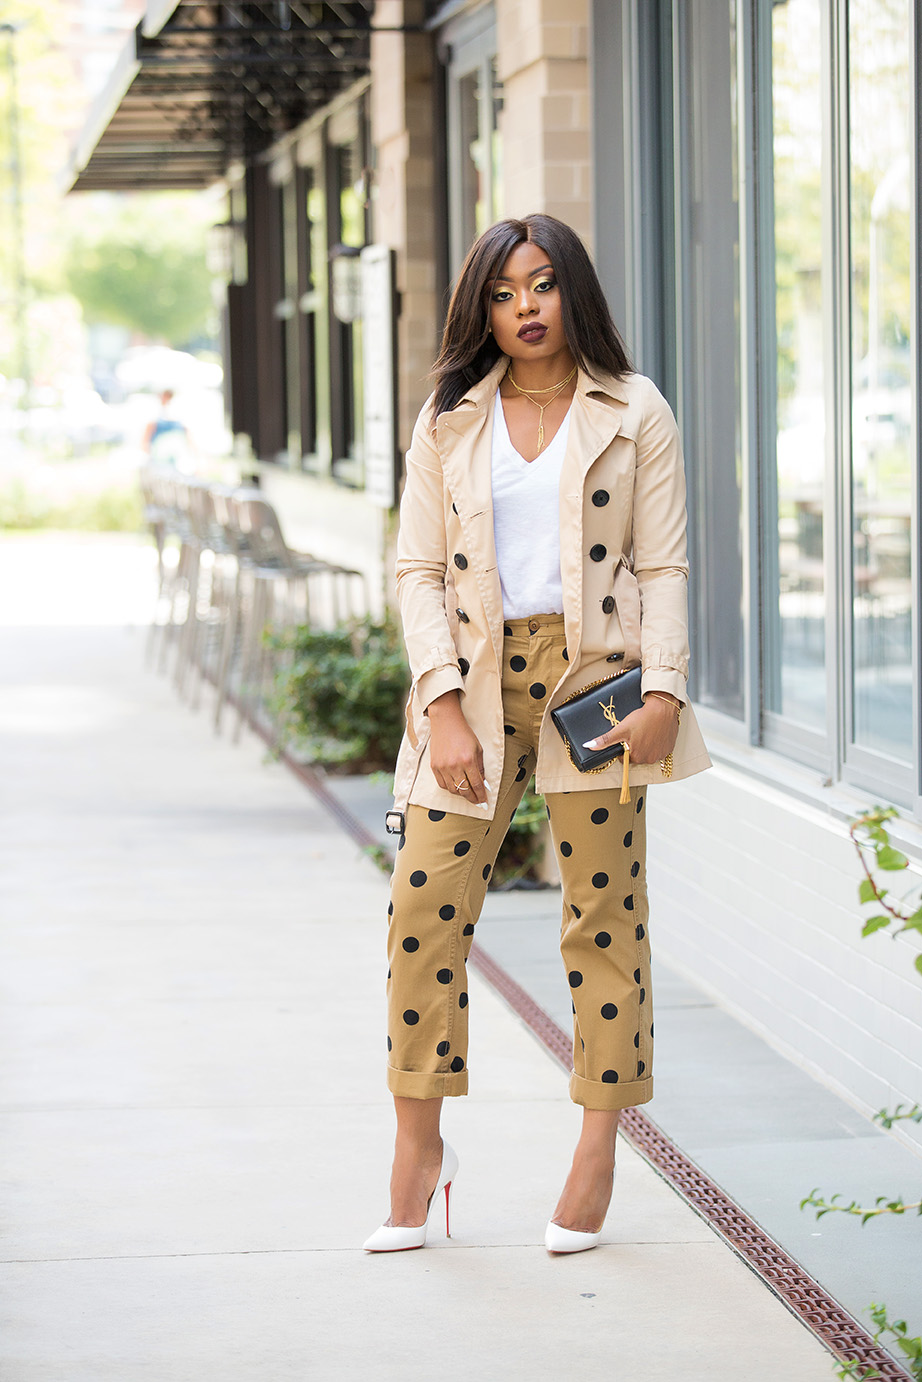 jcrew boyfriend chino in polka dot, www.jadore-fashion.com